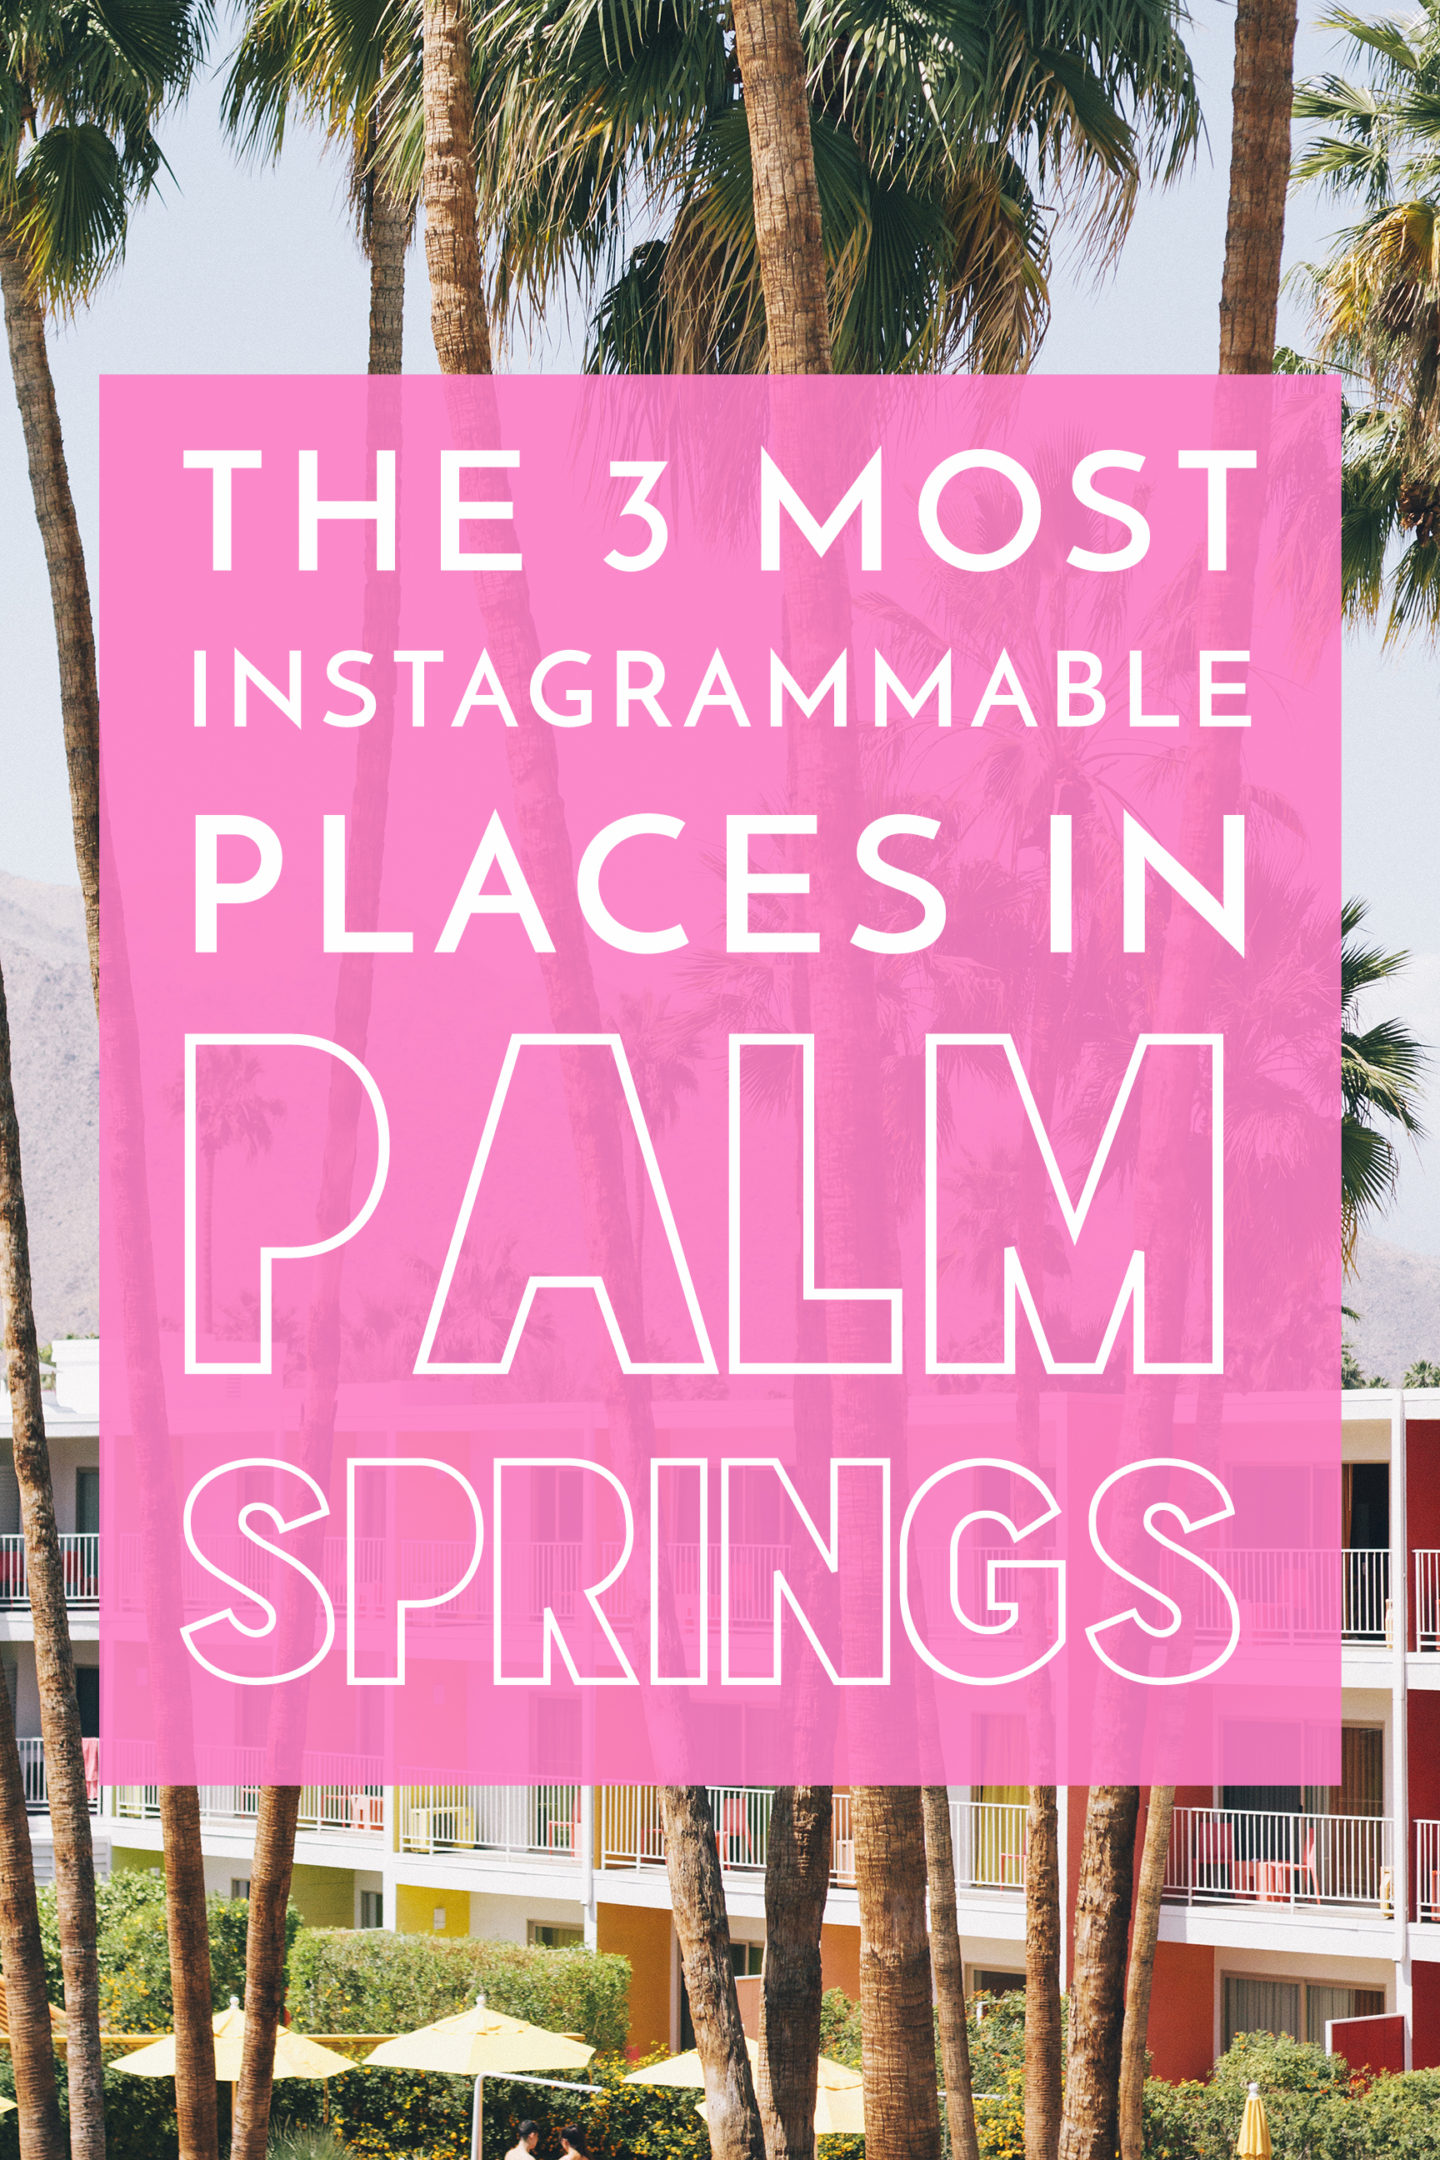 The 3 Most Instagrammable Places in Palm Springs